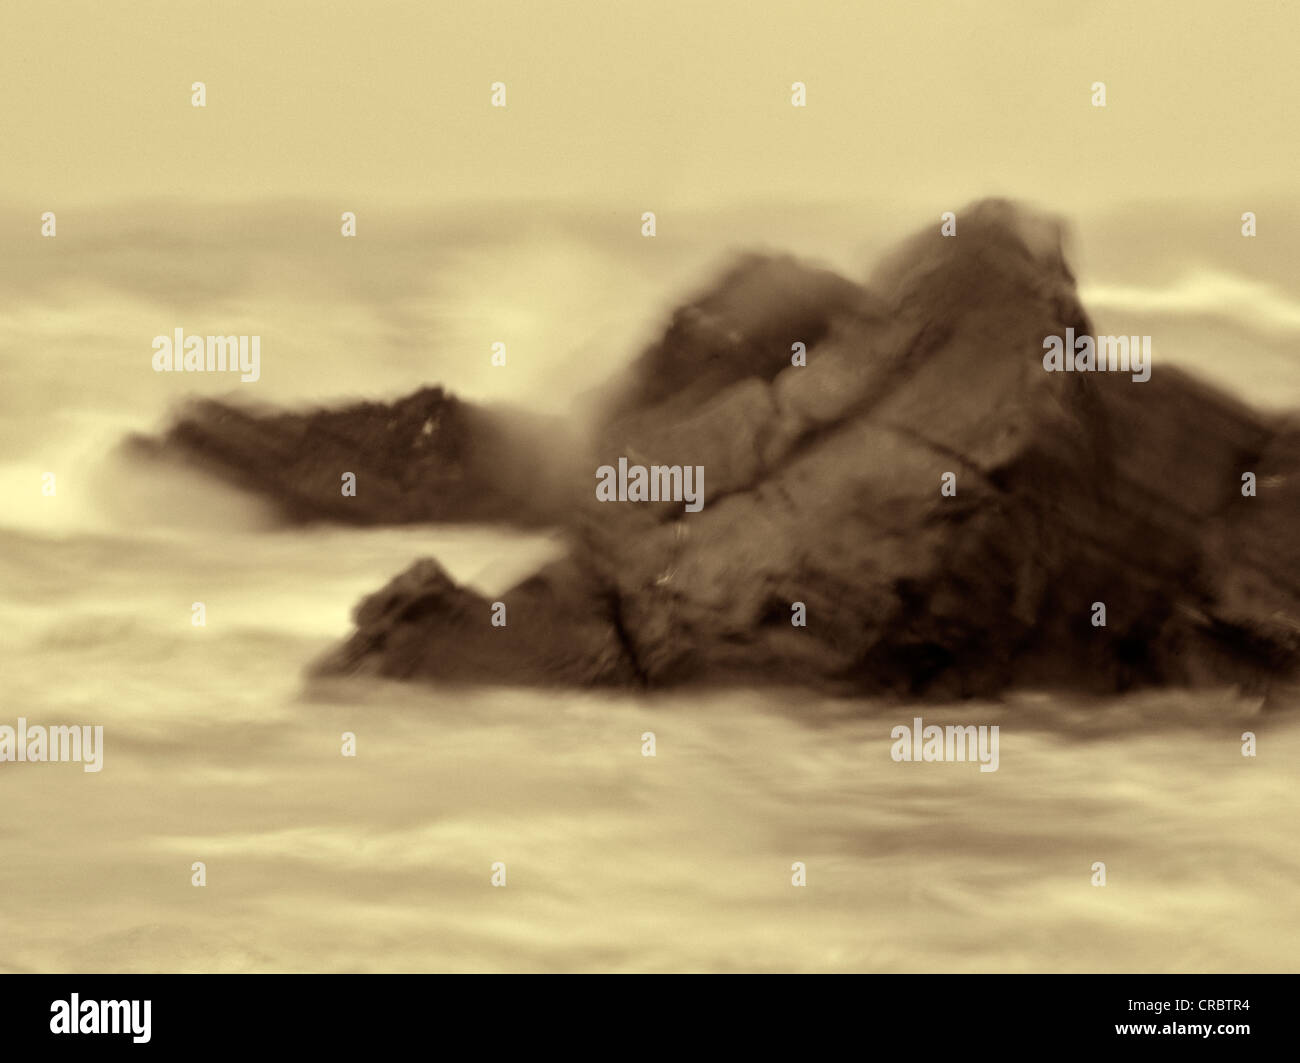 Rainy day image of rocks and waves at Harris Beach State Park, Oregon - Stock Image